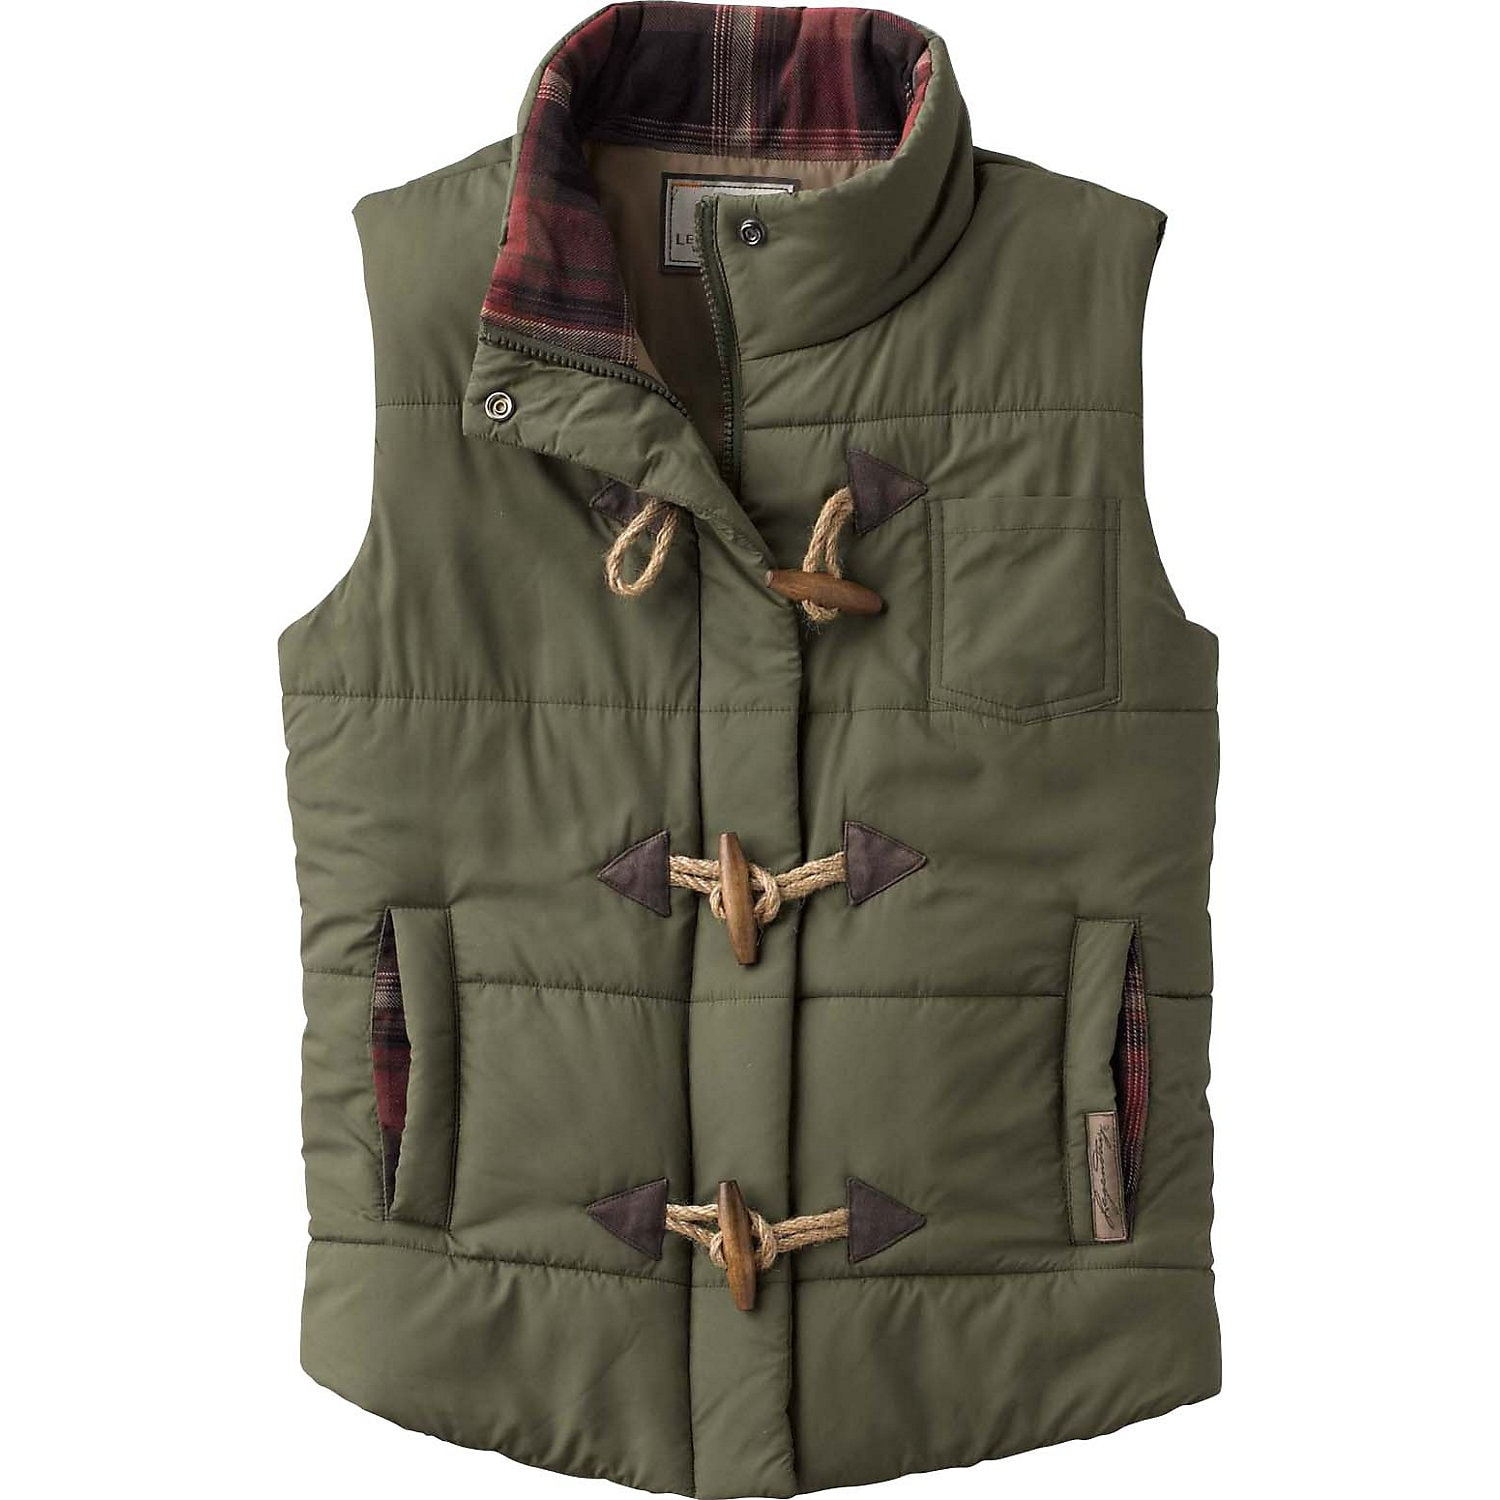 zip front slant size up pockets quilt quilted product s bargains vest unique rakuten women shop collar green stand padded